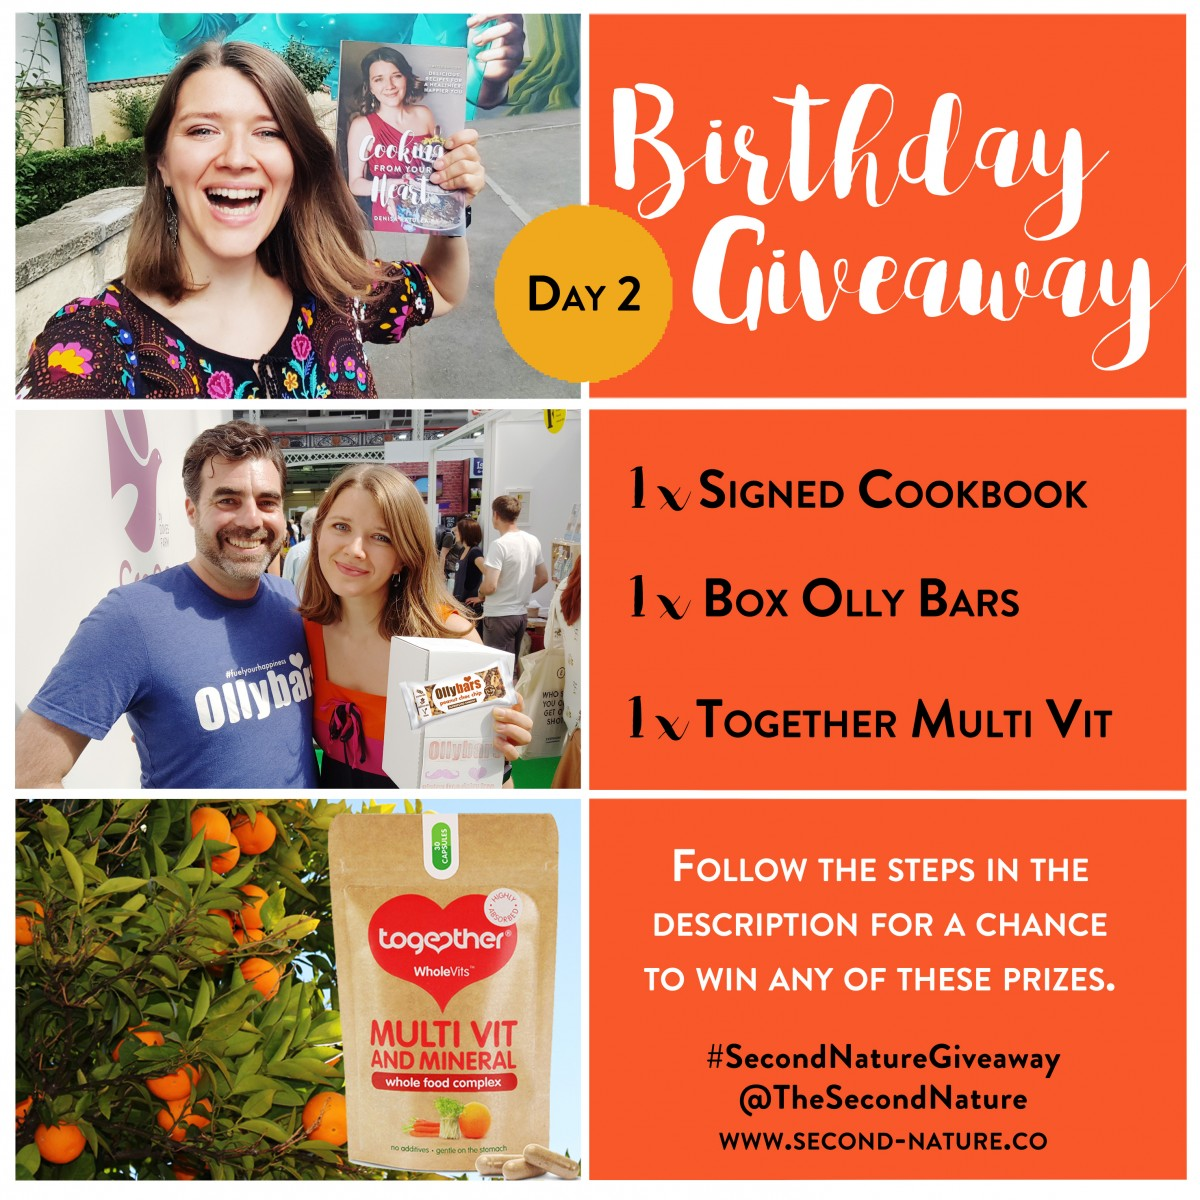 Day2-birthday-giveaway-prizes-second-nature